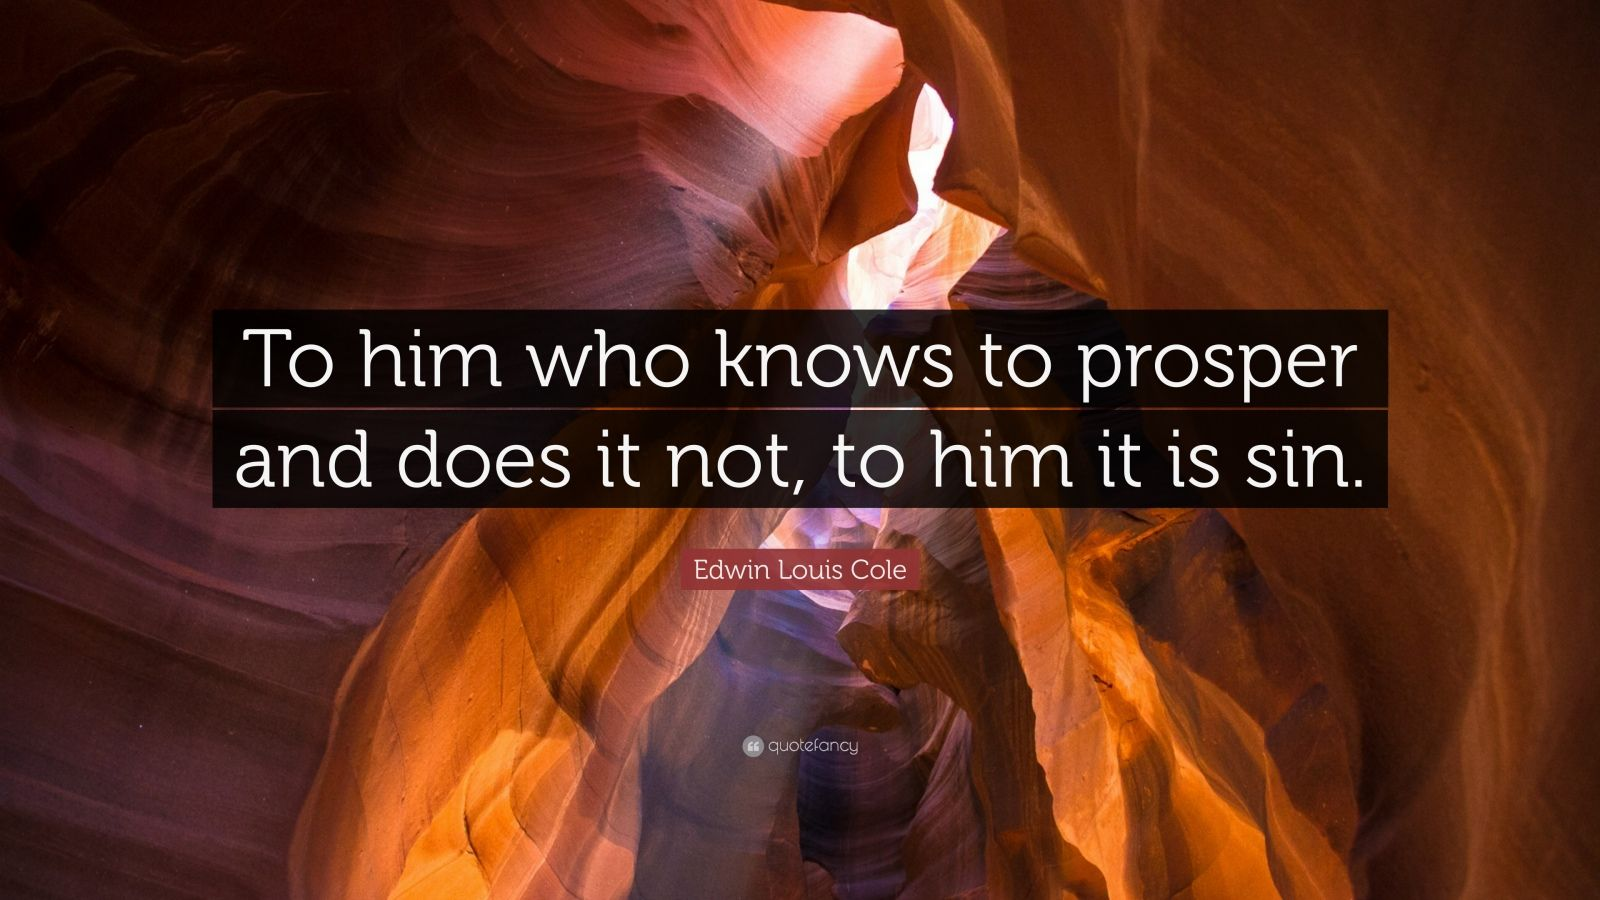 """Edwin Louis Cole Quote: """"To him who knows to prosper and does it not, to him it is sin."""""""